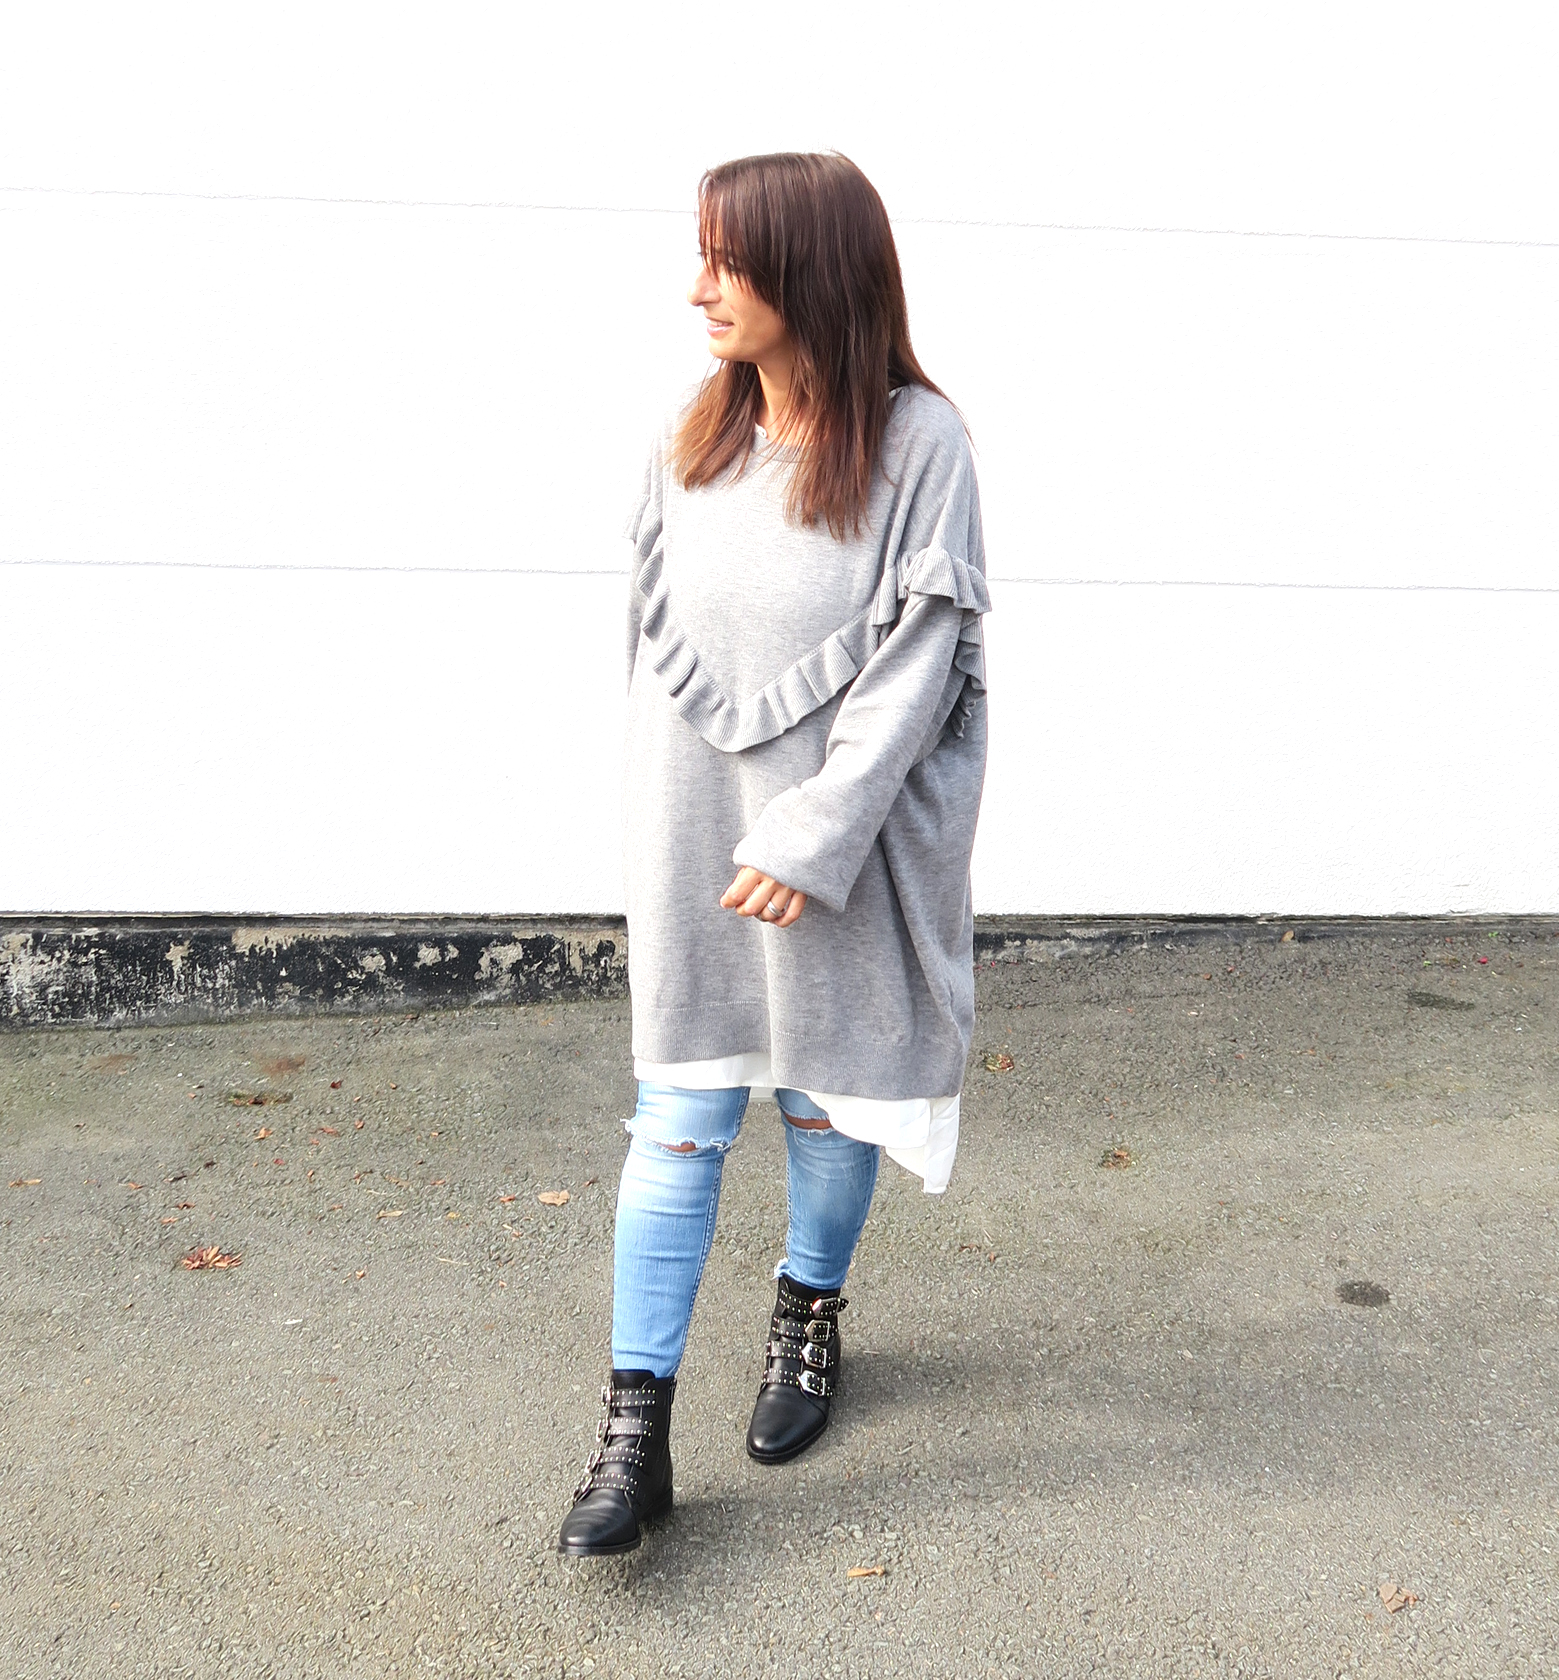 blogger-influencer-nieten-boots-givenchy-style-ruffles-8